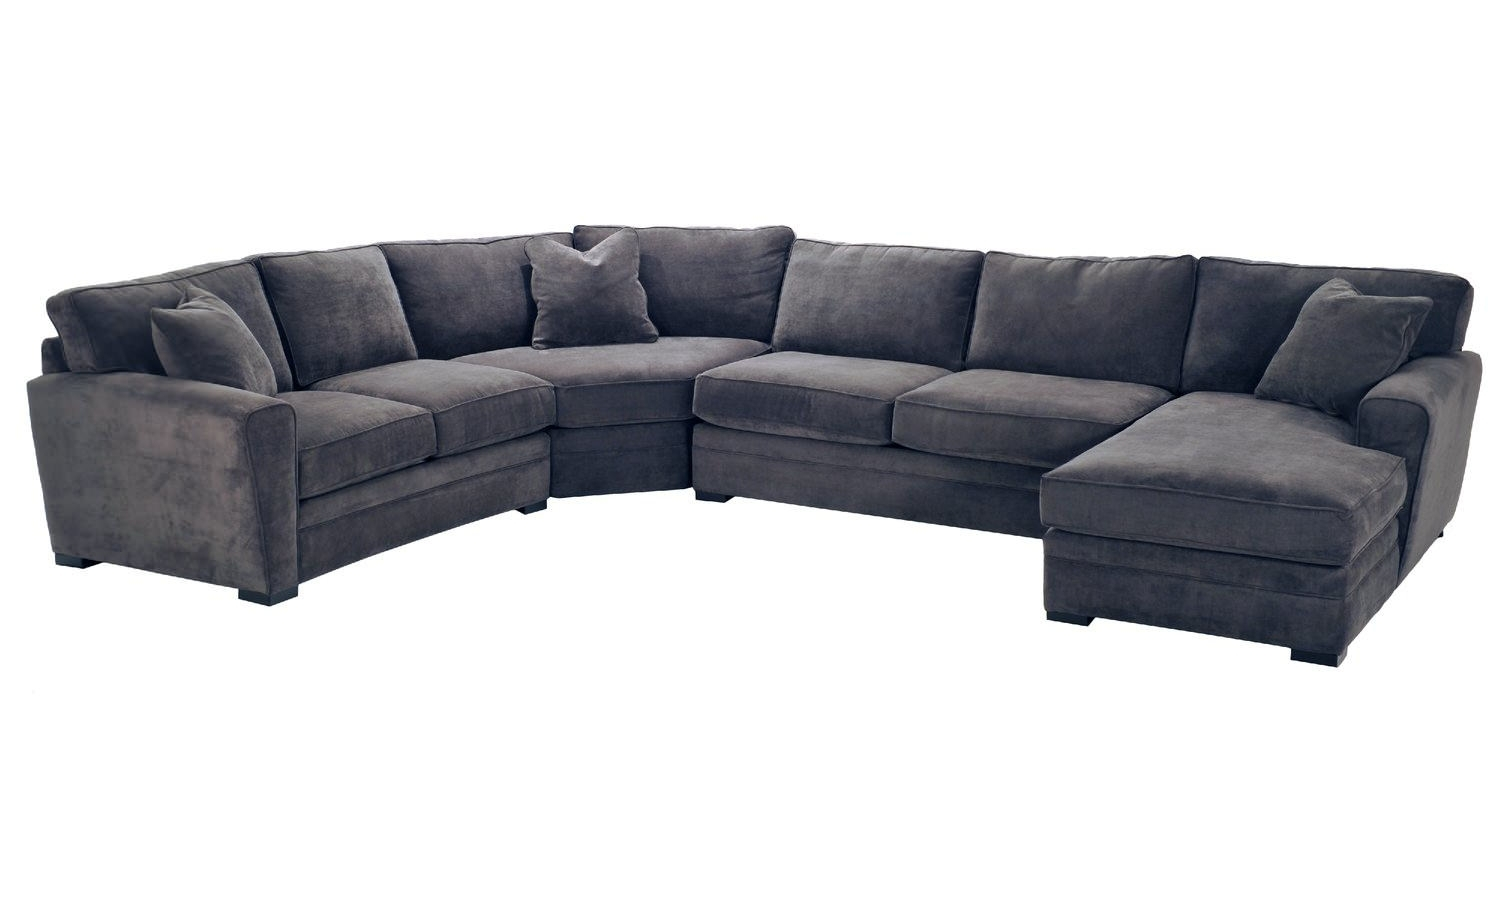 Artemis 4 Piece Sectional | Hom Furniture inside Blaine 4 Piece Sectionals (Image 3 of 30)